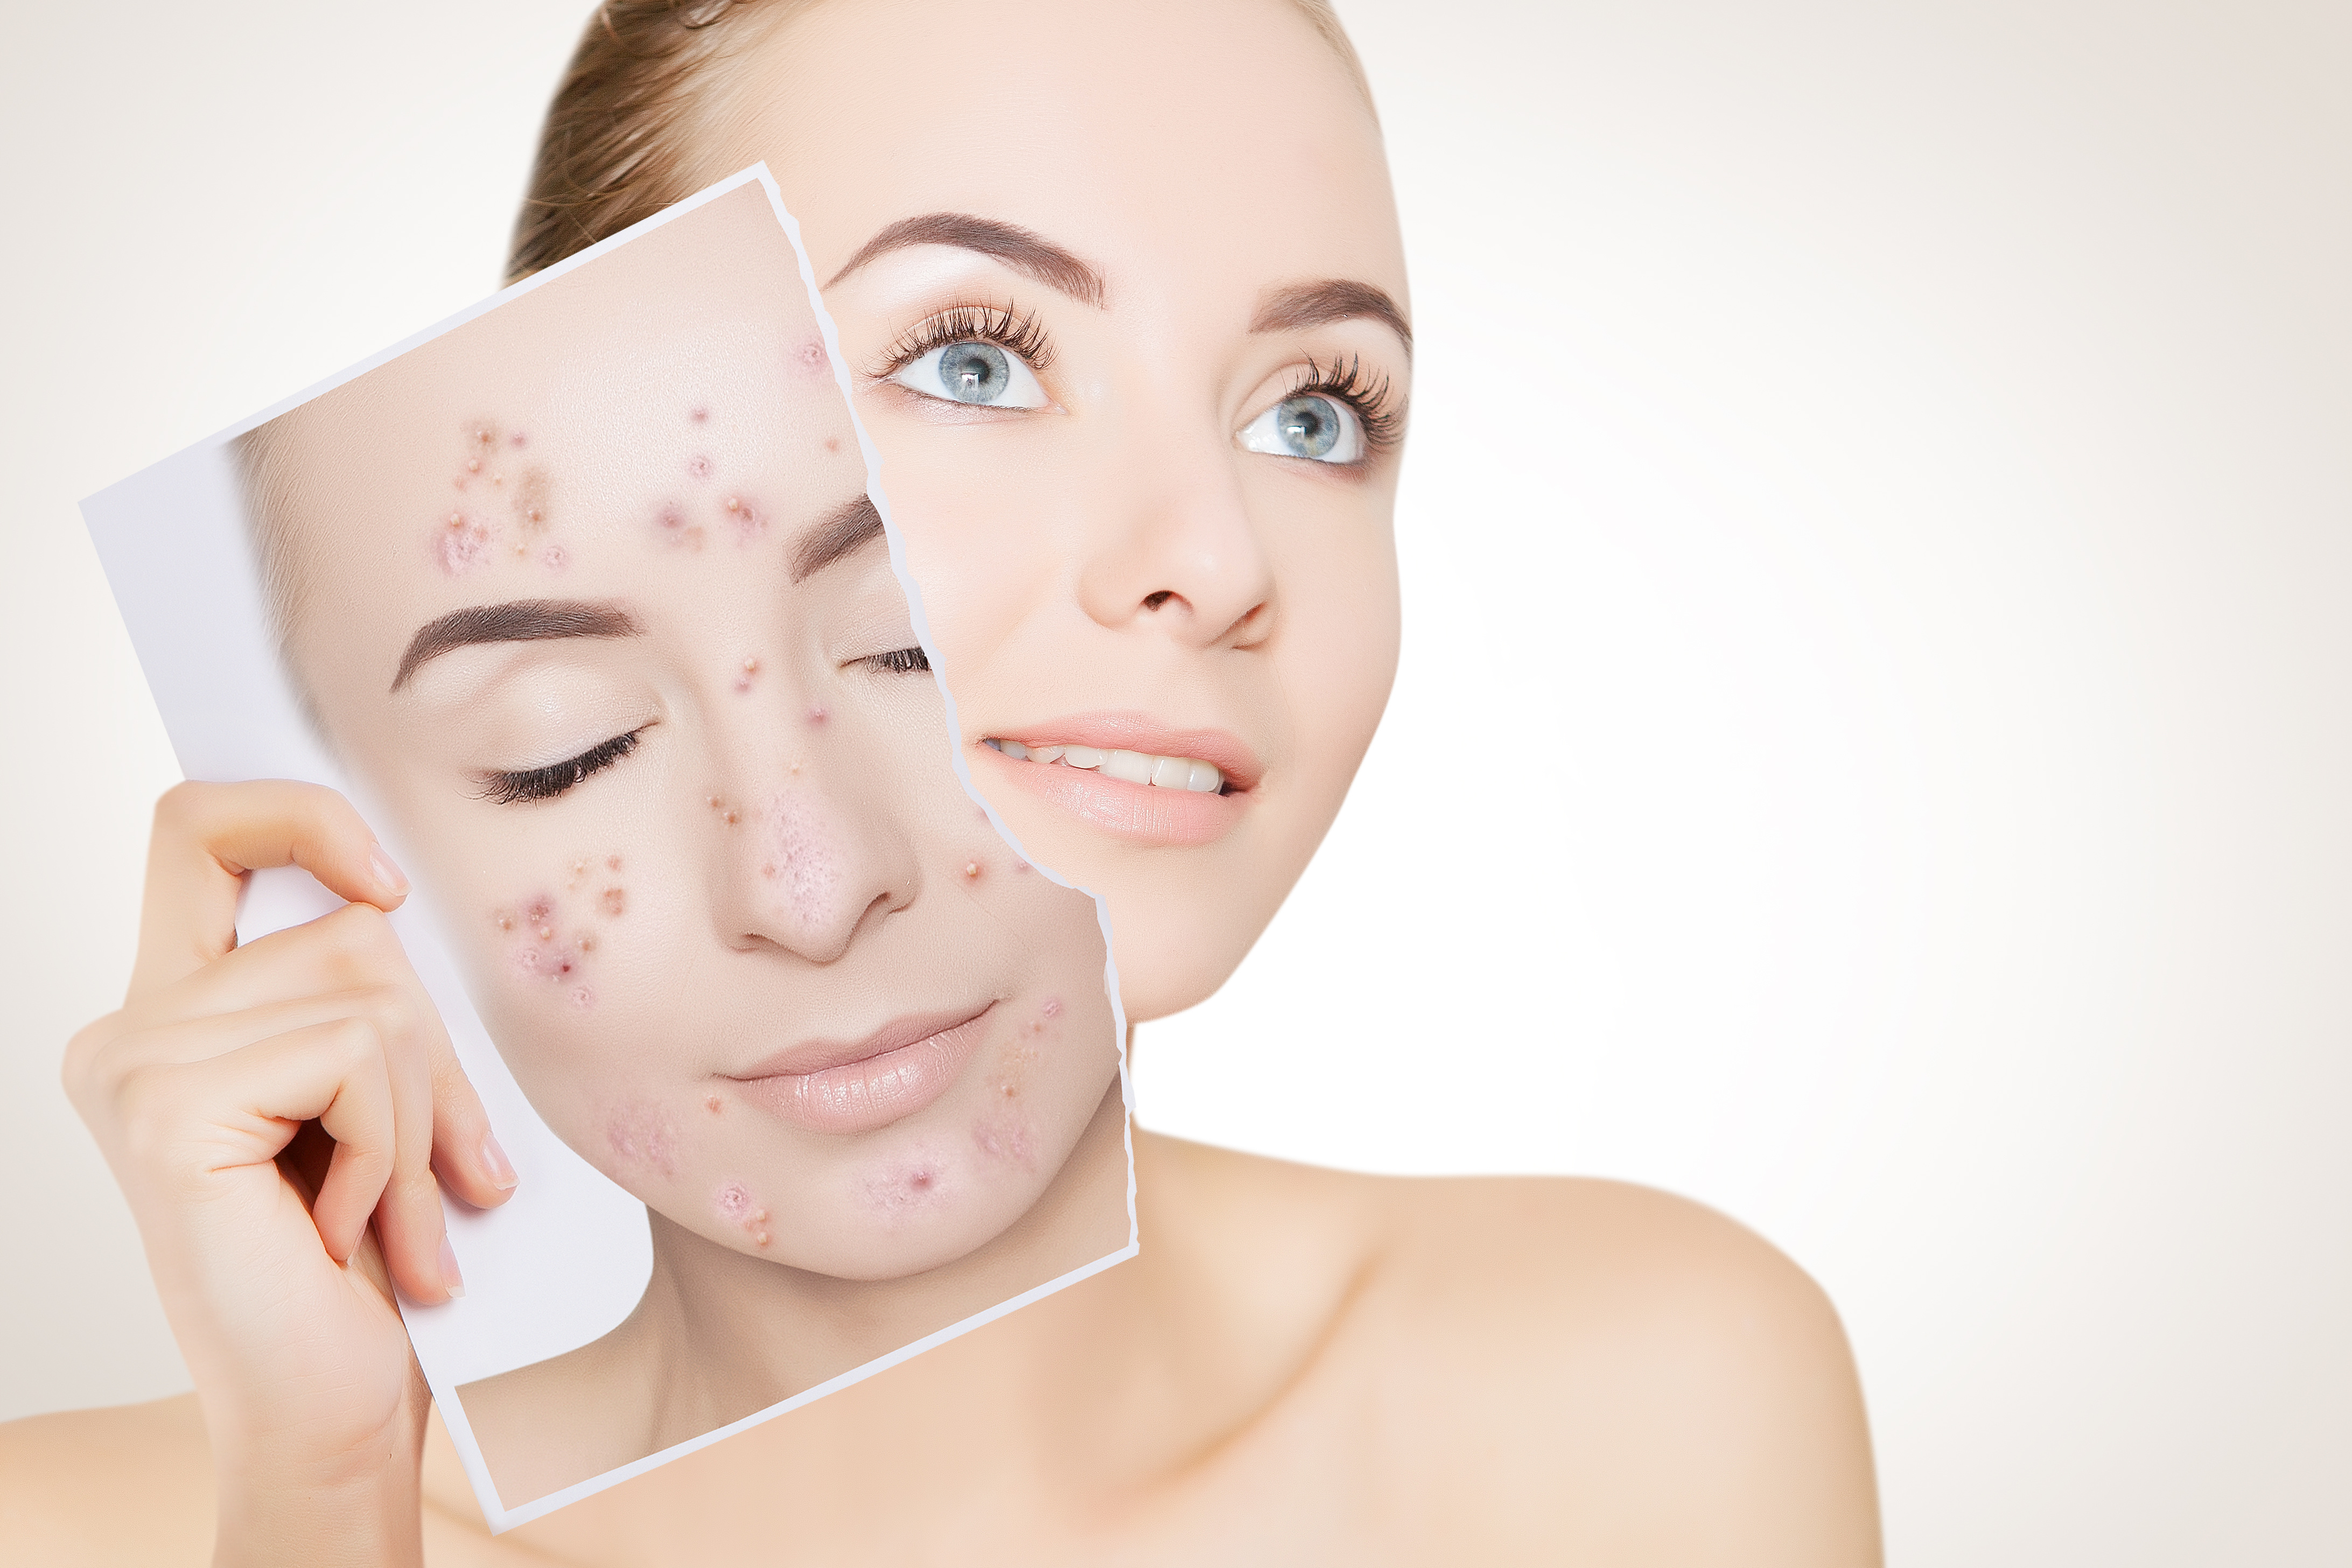 Course Name: Acne course from cureskin academy